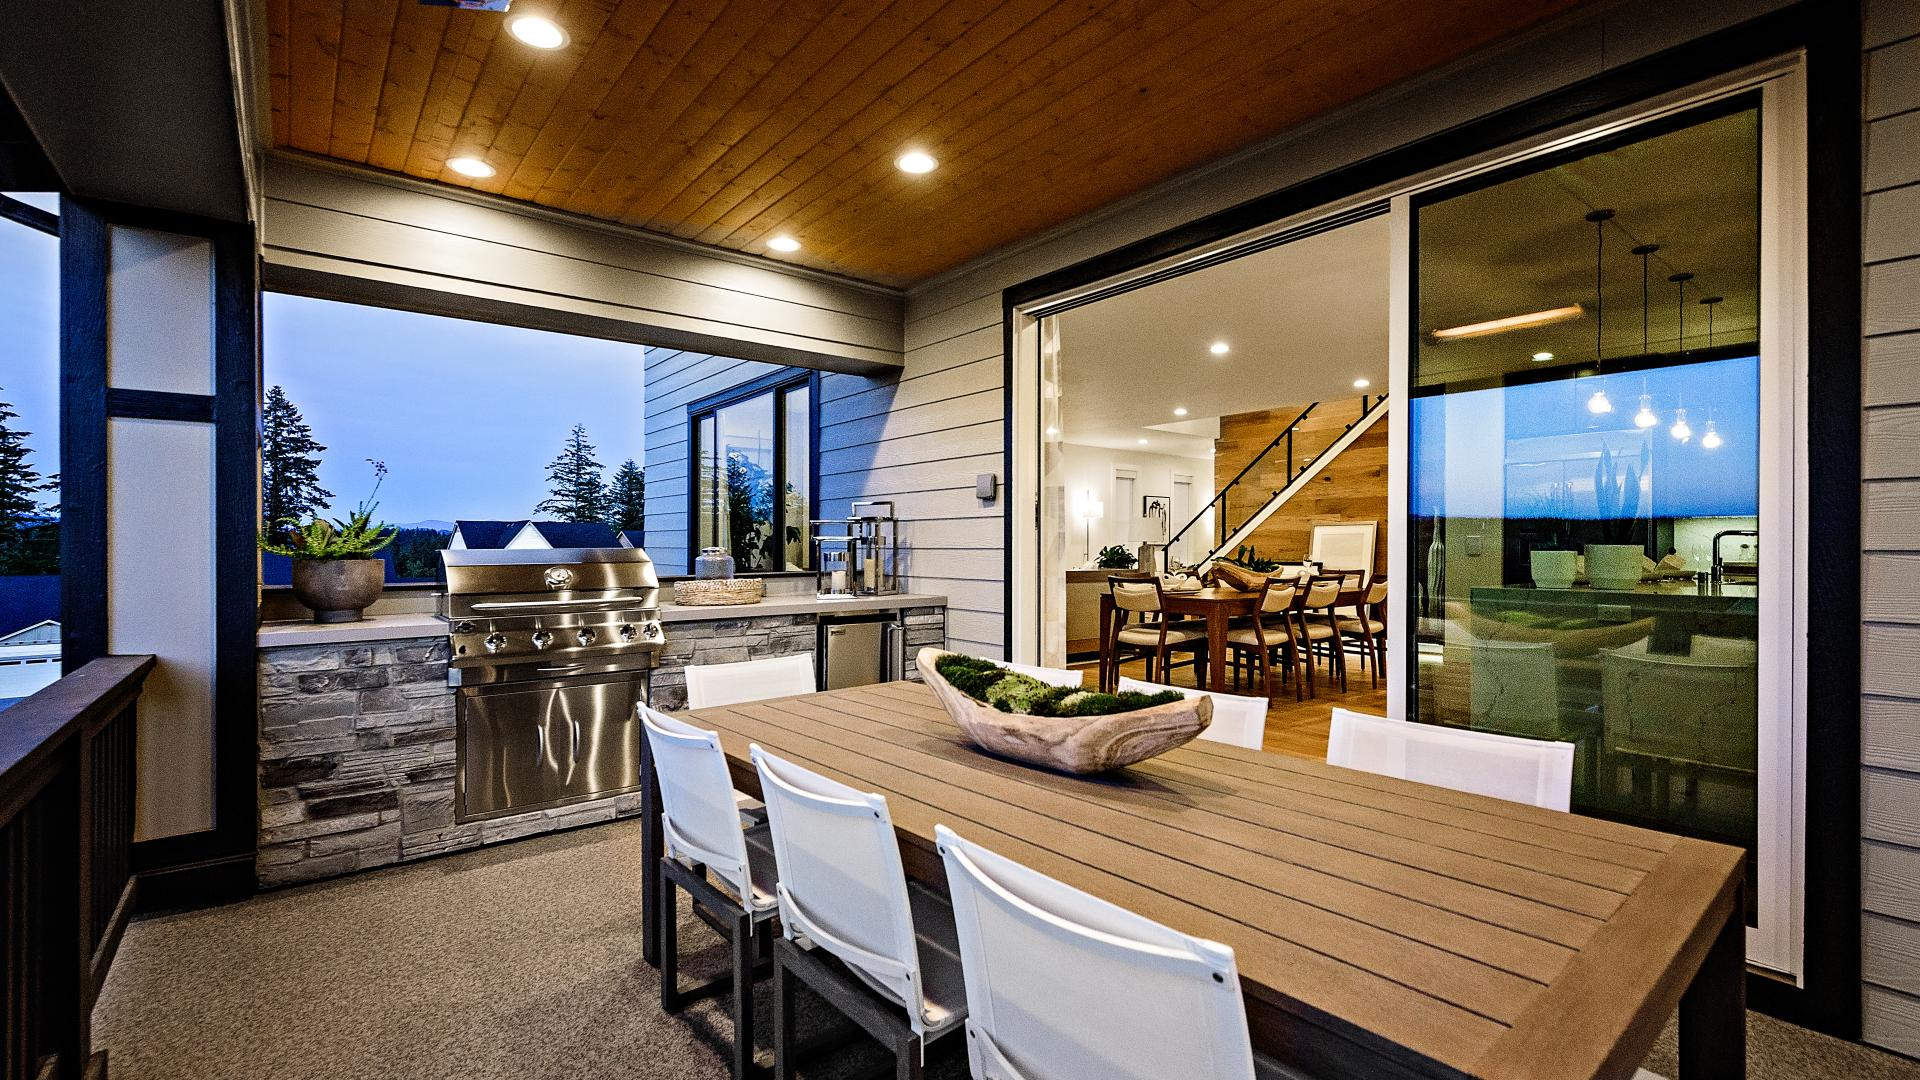 Luxury outdoor living with heaters and a cozy gas fireplace